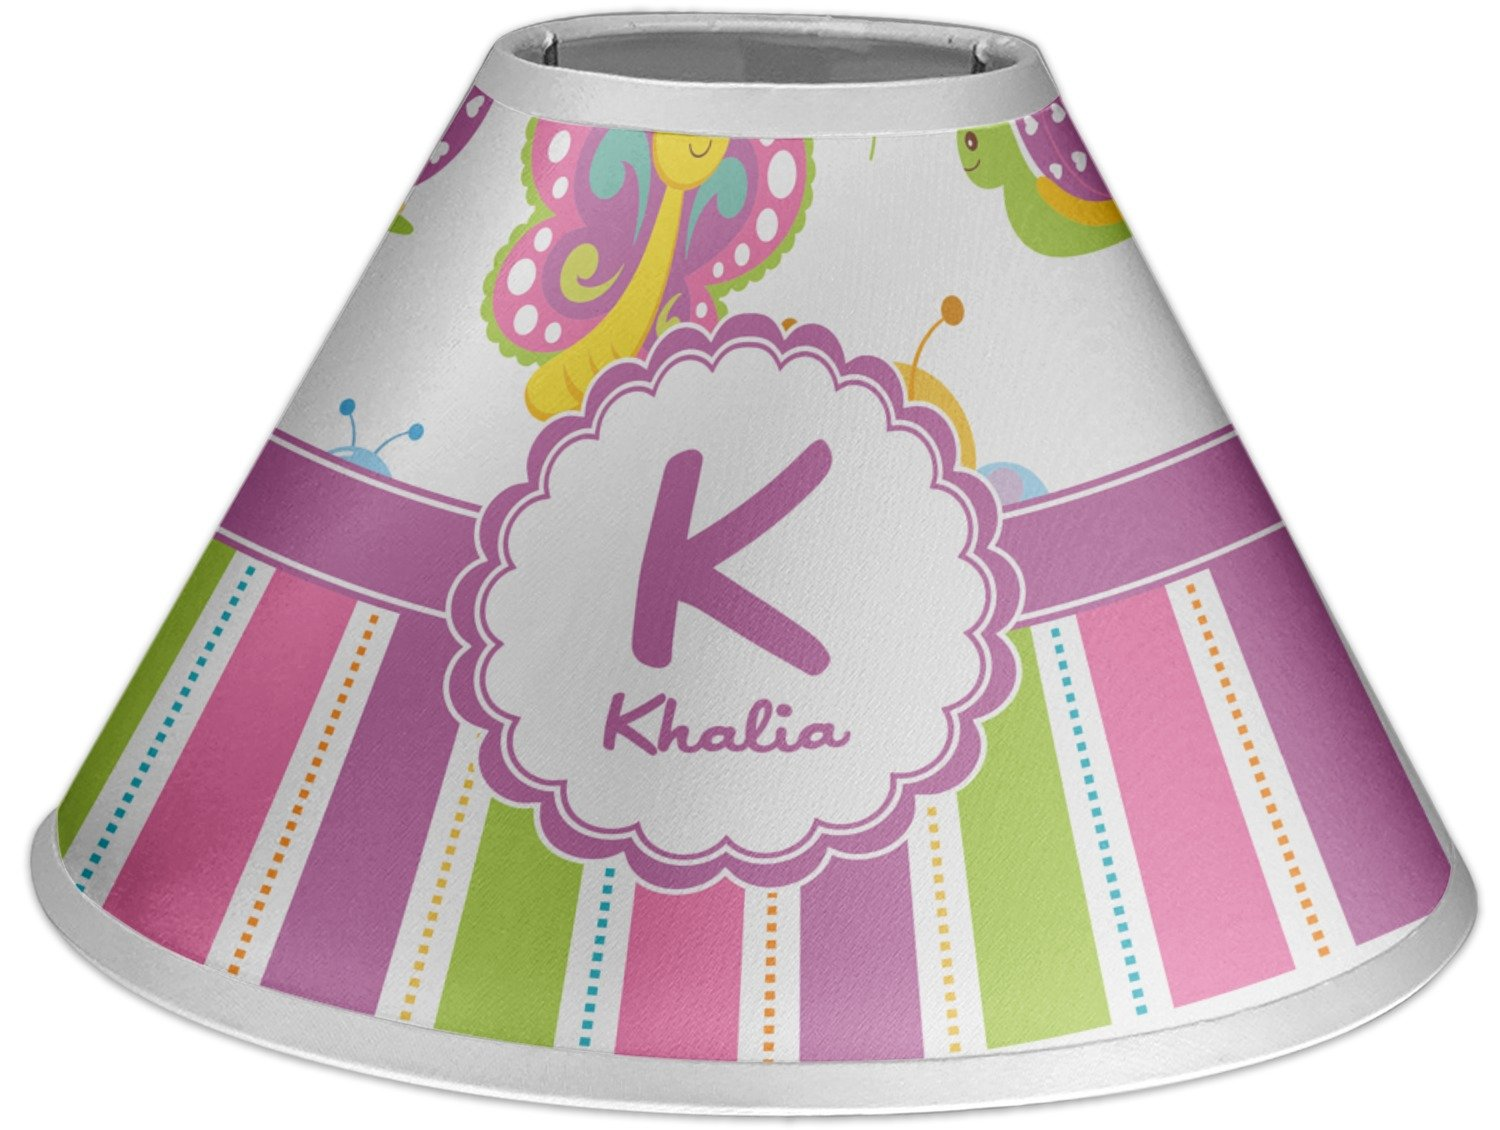 RNK Shops Butterflies & Stripes Coolie Lamp Shade (Personalized)